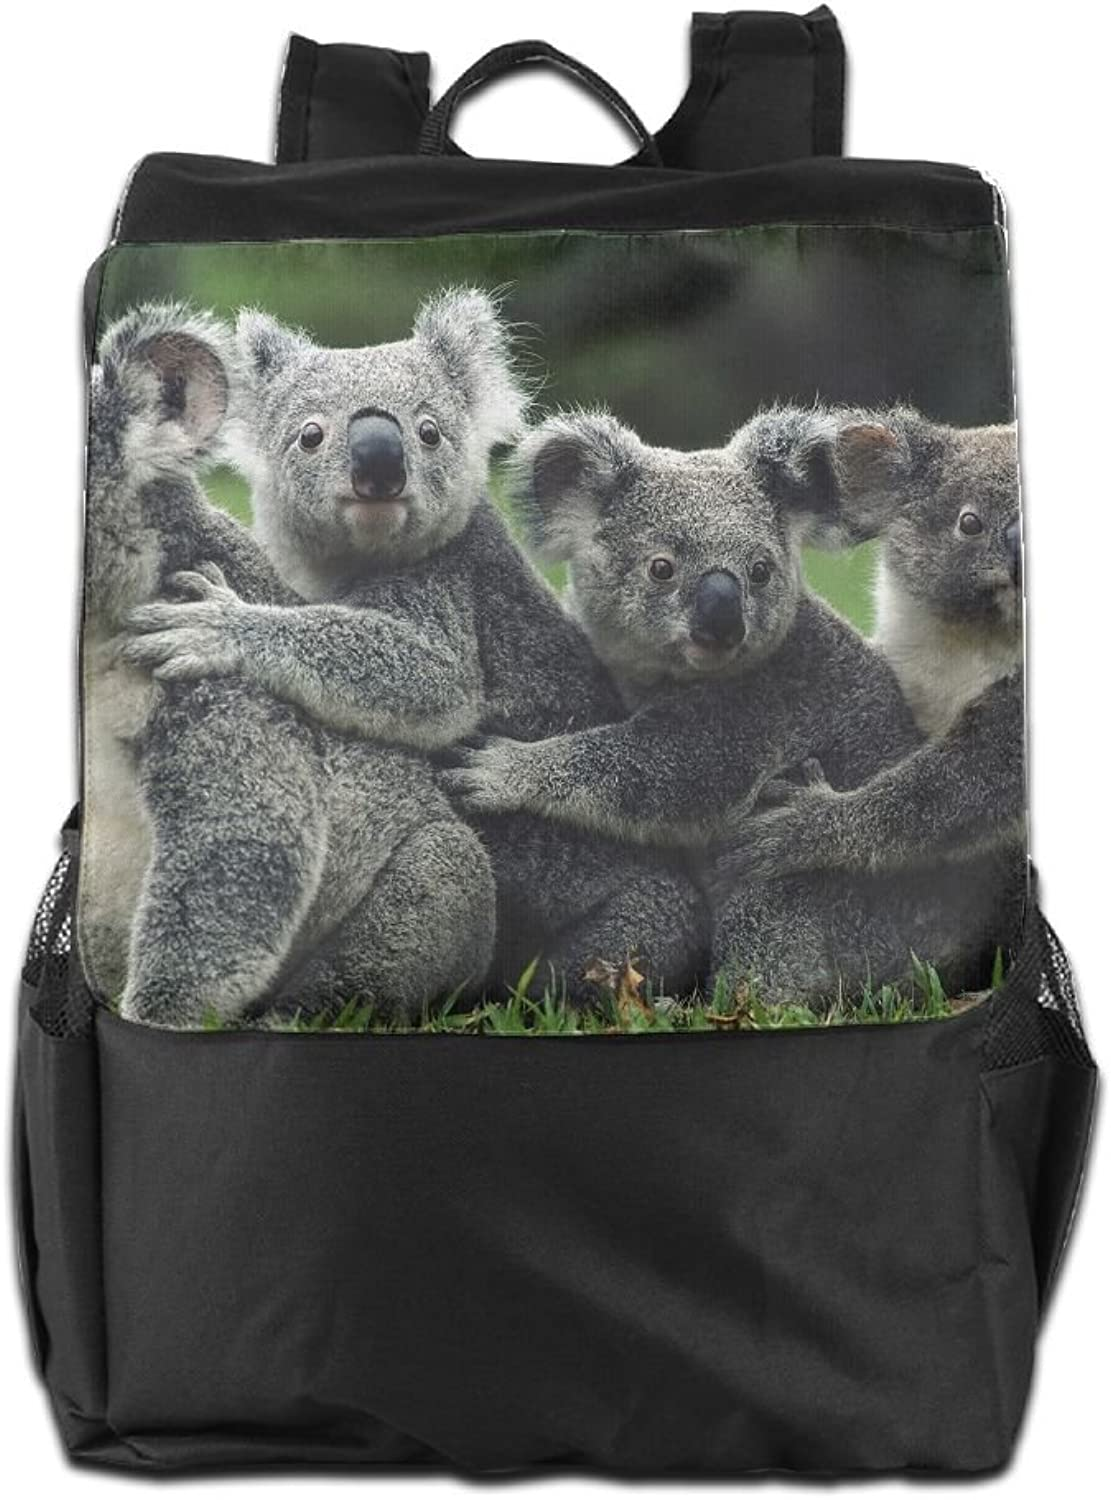 142d29b61bad Koalas Family Printed Backpack Lightweight Casual Bag Boys School ...